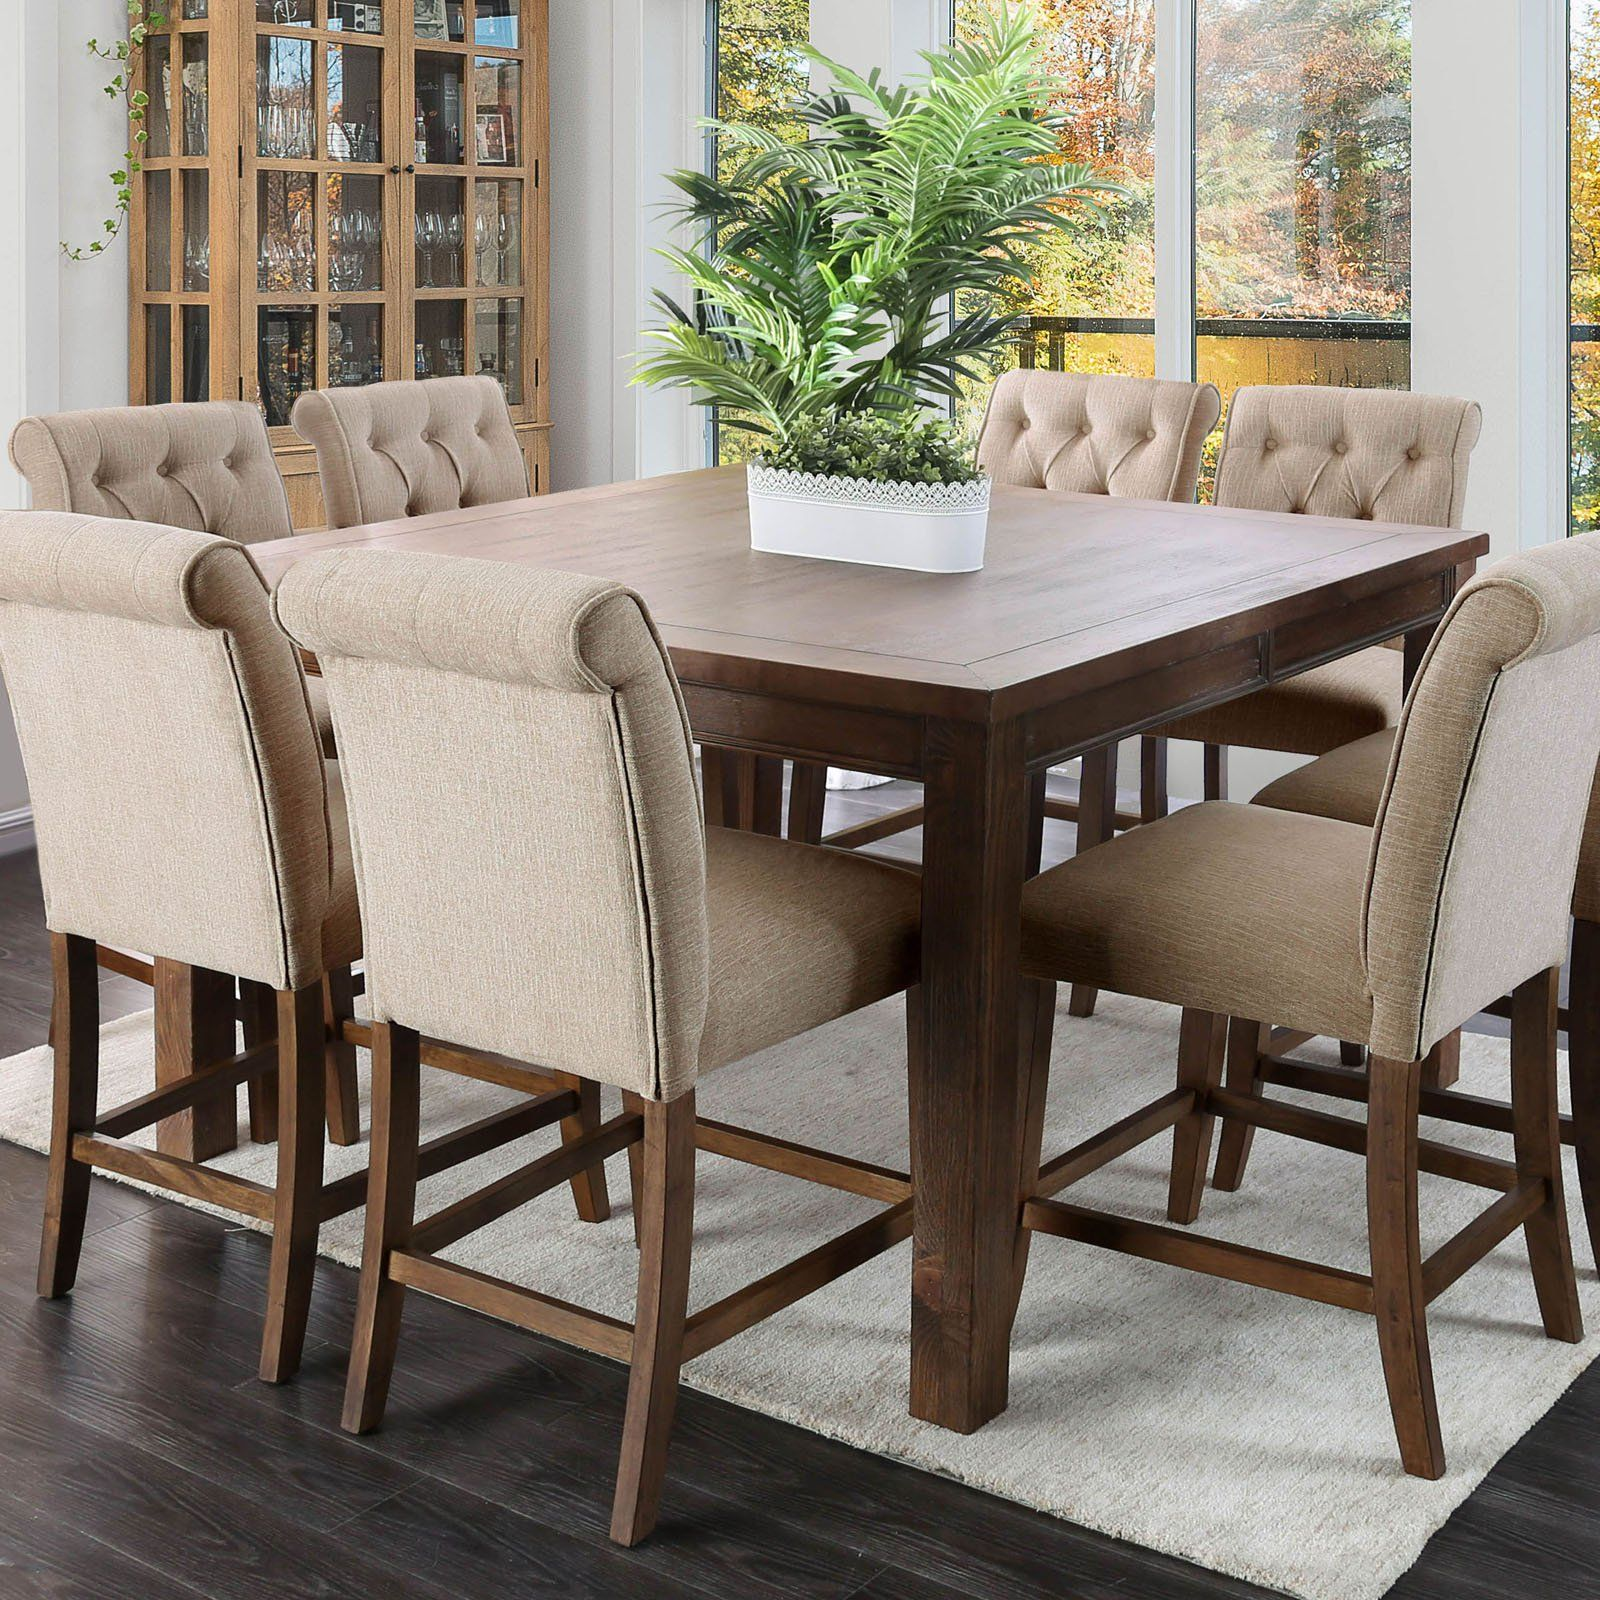 Home in 2020 Counter height dining table, Counter height